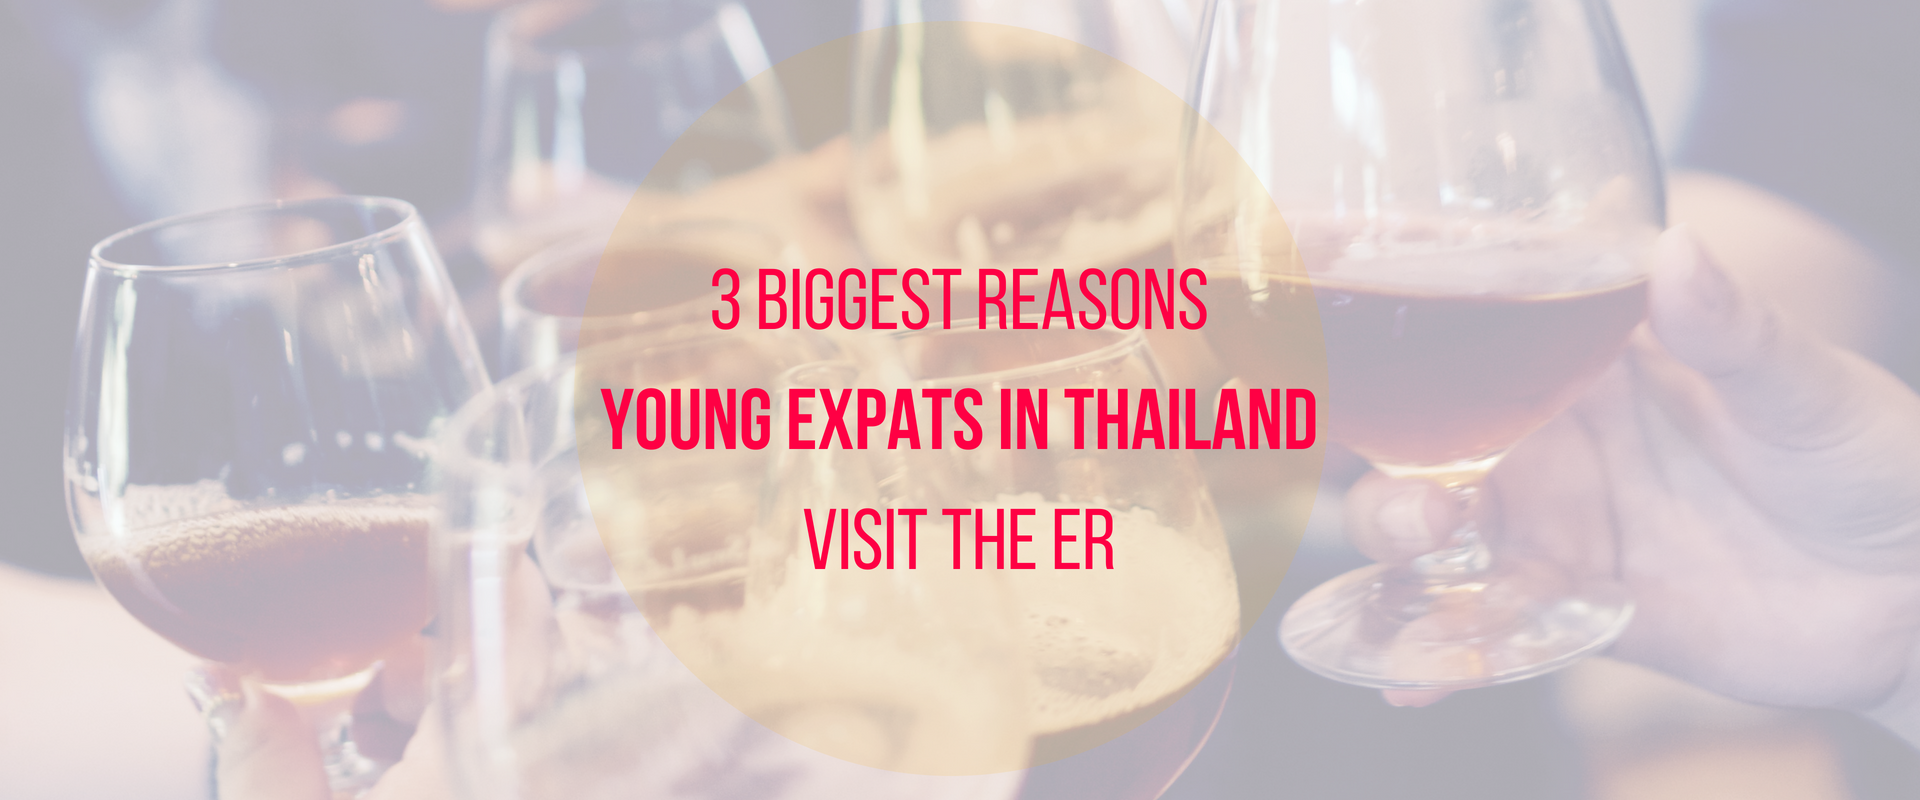 3 biggest reasons young expats in Thailand visit the ER